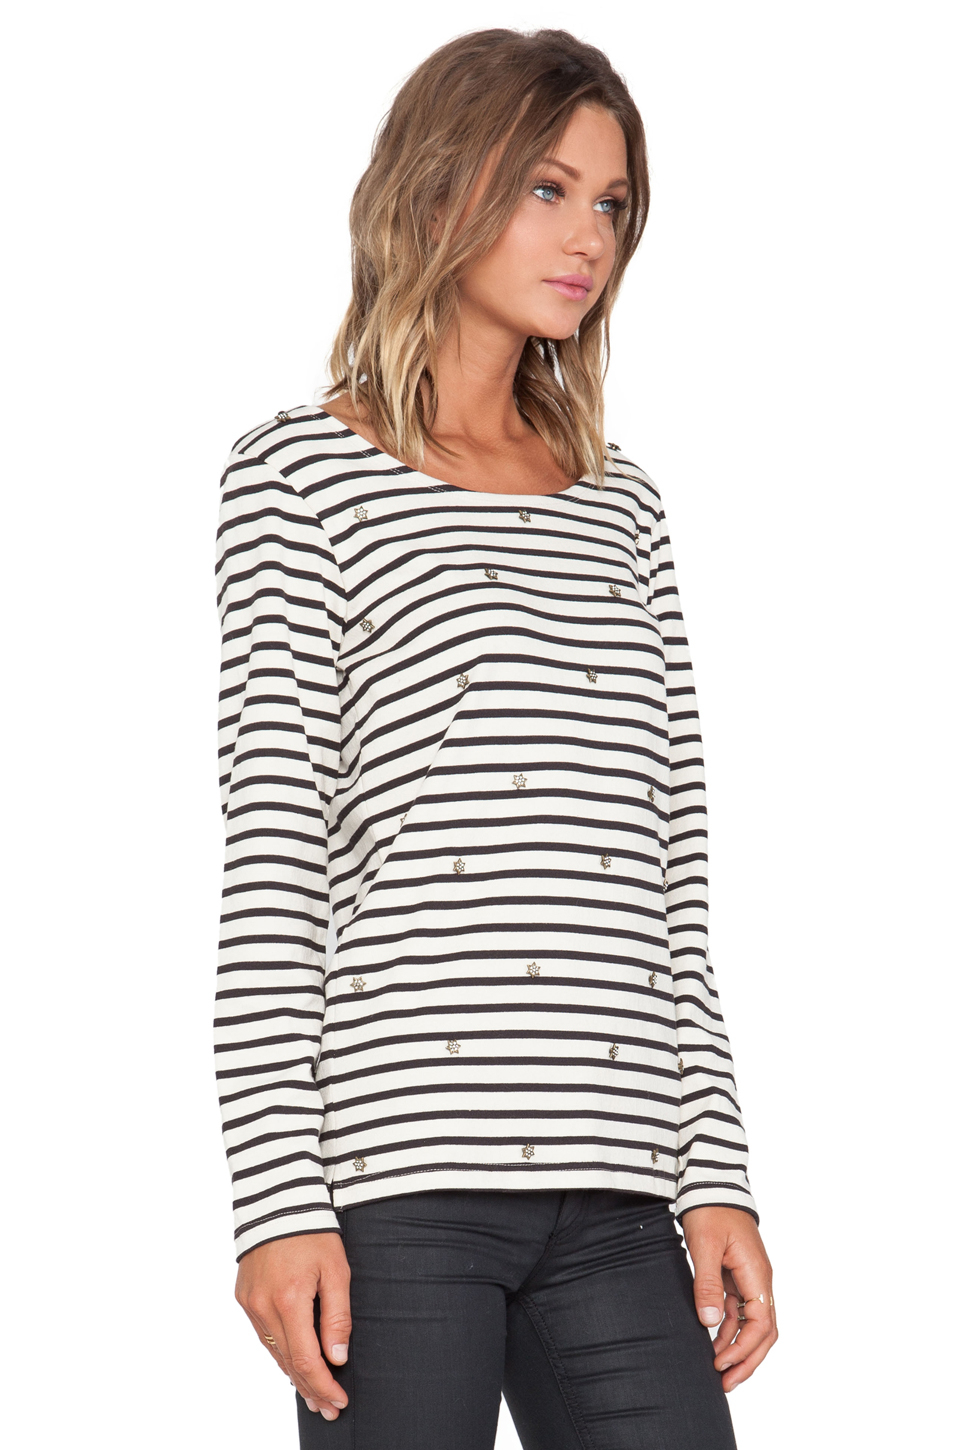 Elbow Sleeve Breton Top, Dark Navy/White Ladies' elbow sleeve Breton top in dark navy (almost black) with white stripes from French label Armor Lux. Made from soft jersey combed cotton, heavy weight quality, turned back cuffs, round neckline, with a signature embroidered on left sleeve.